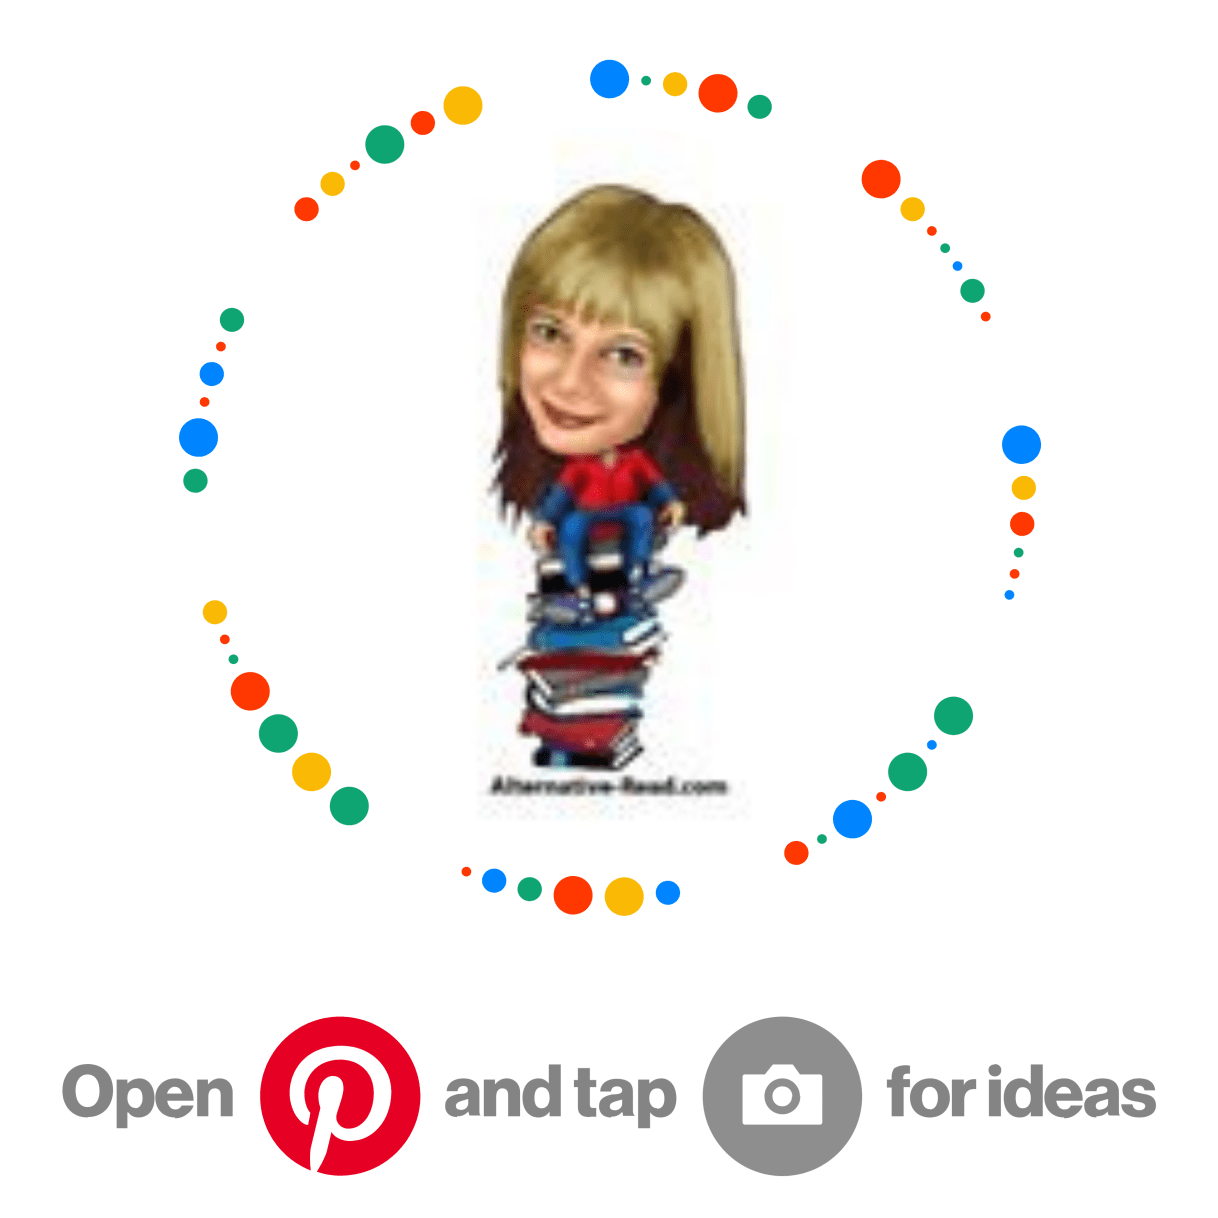 My Pinterest pincode_842595548941811943